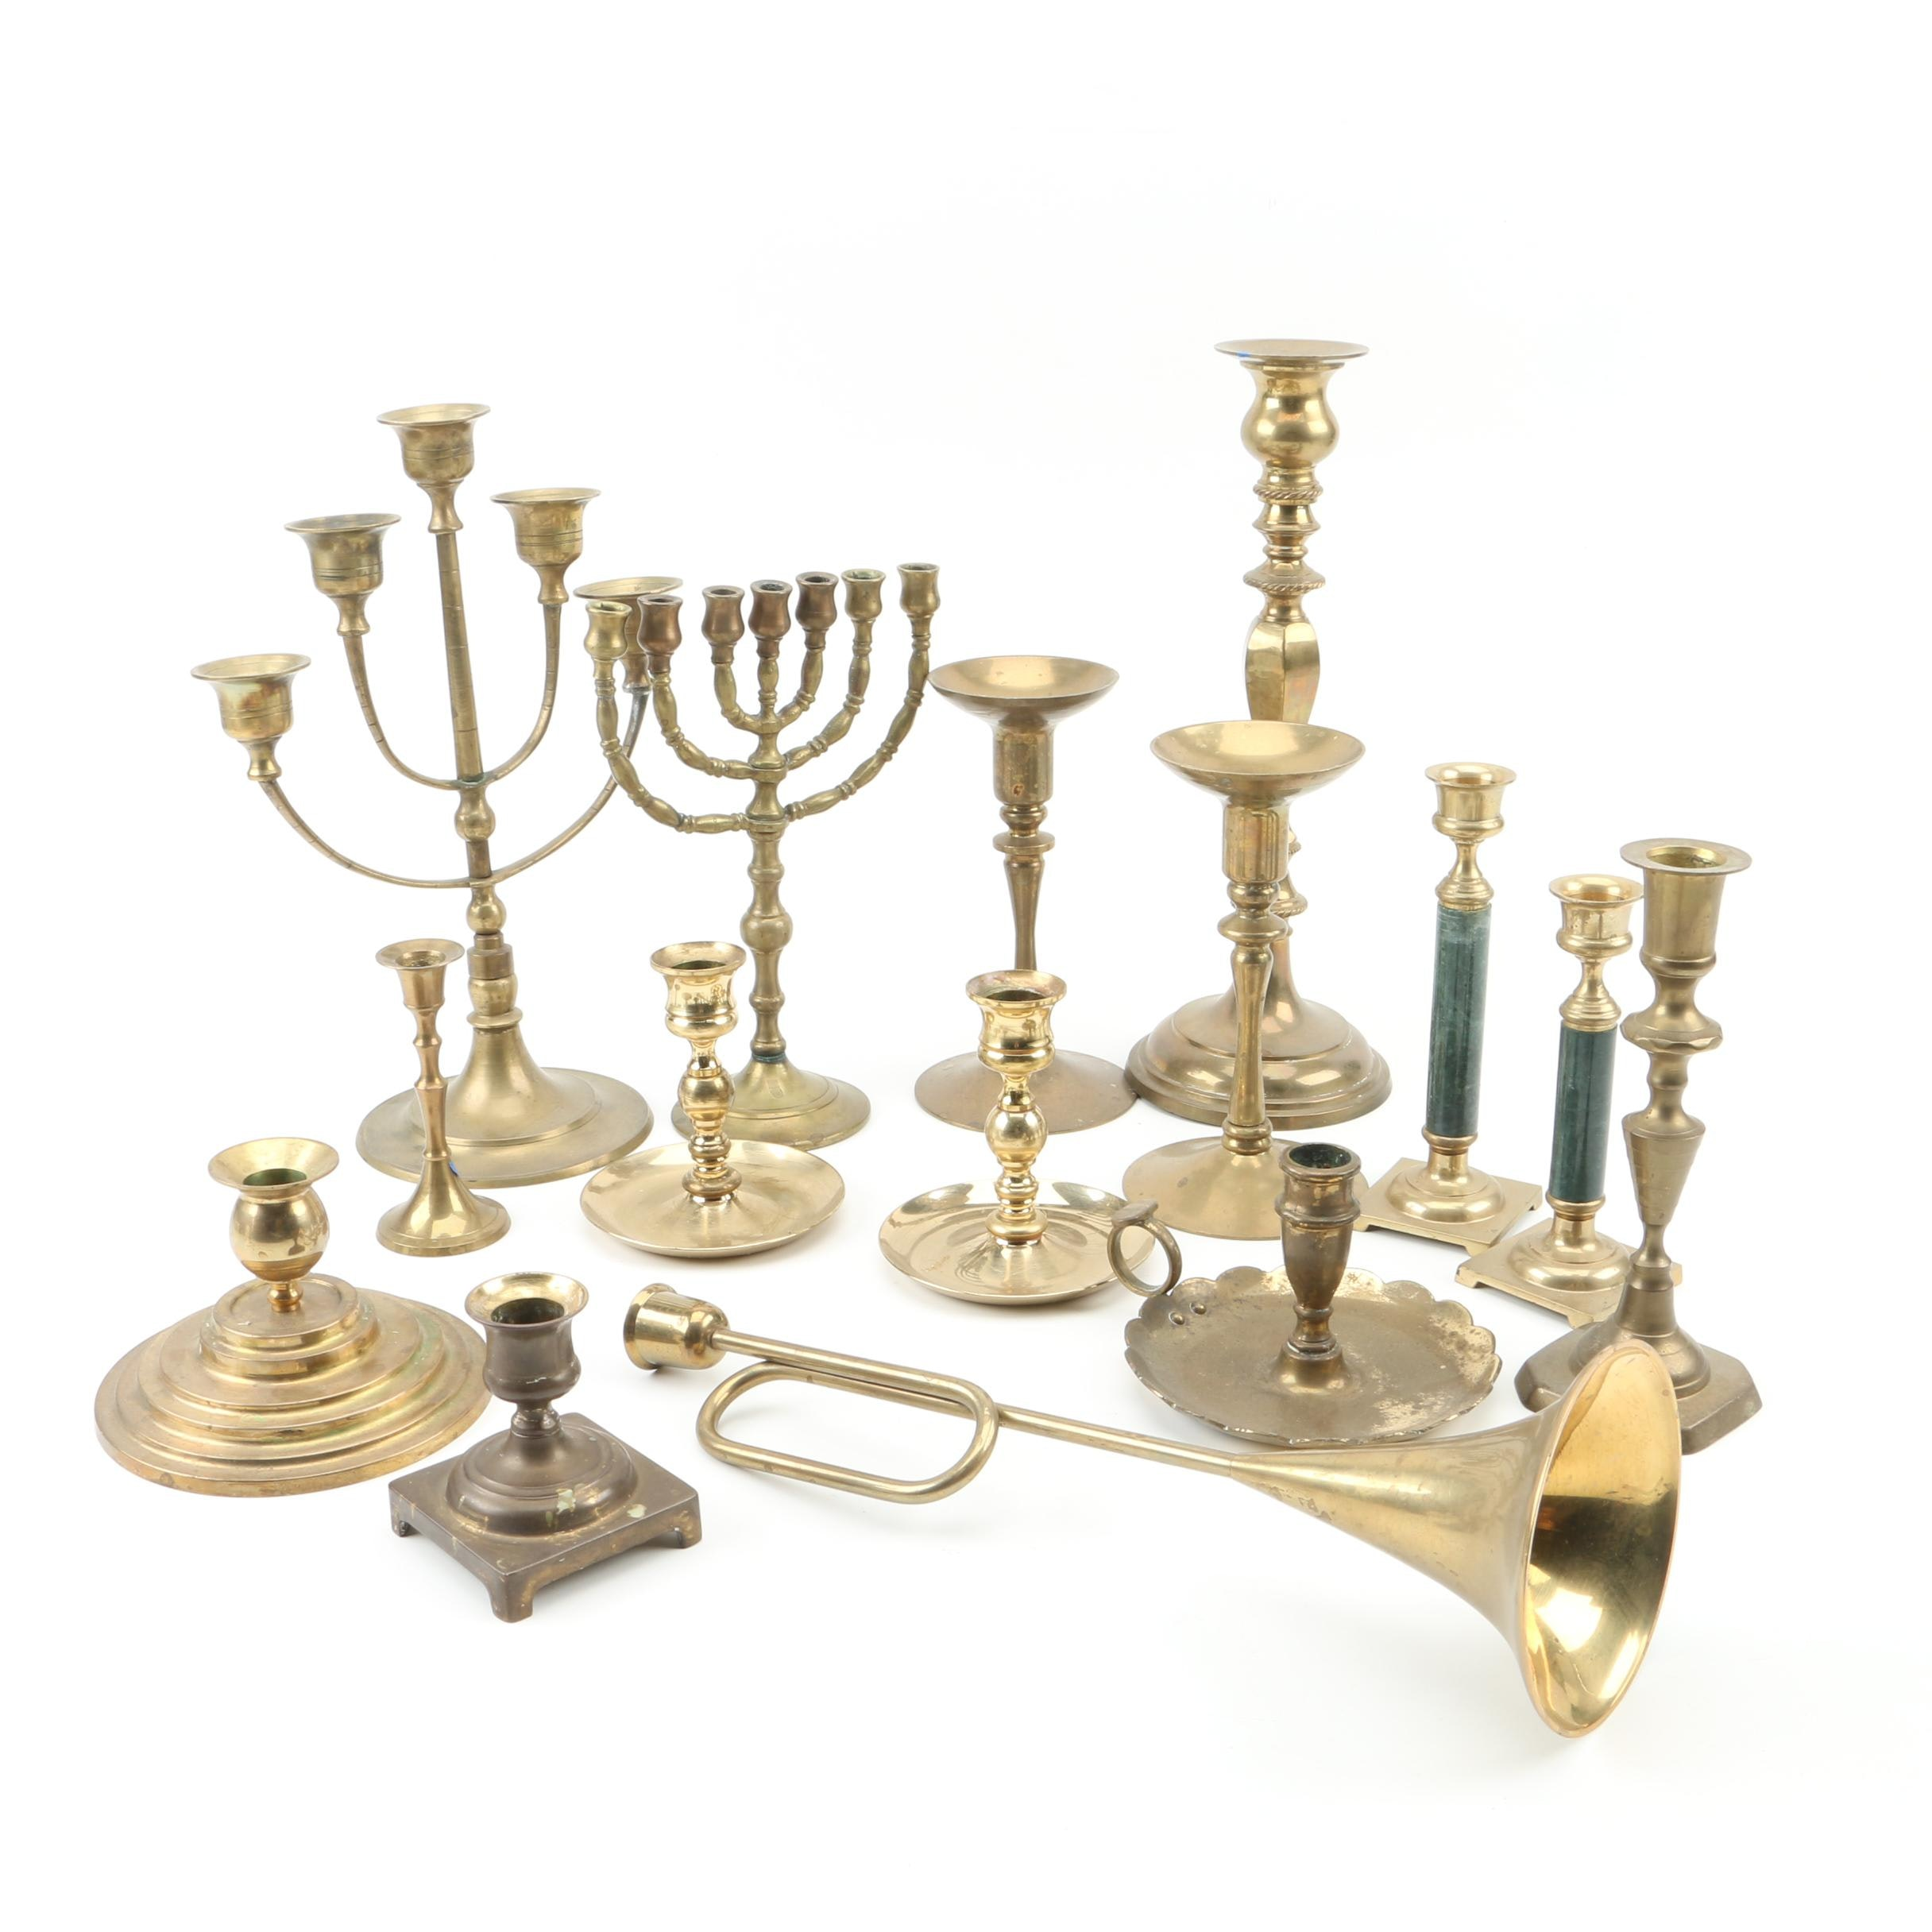 Brass Menorah, Candelabra and Candlesticks